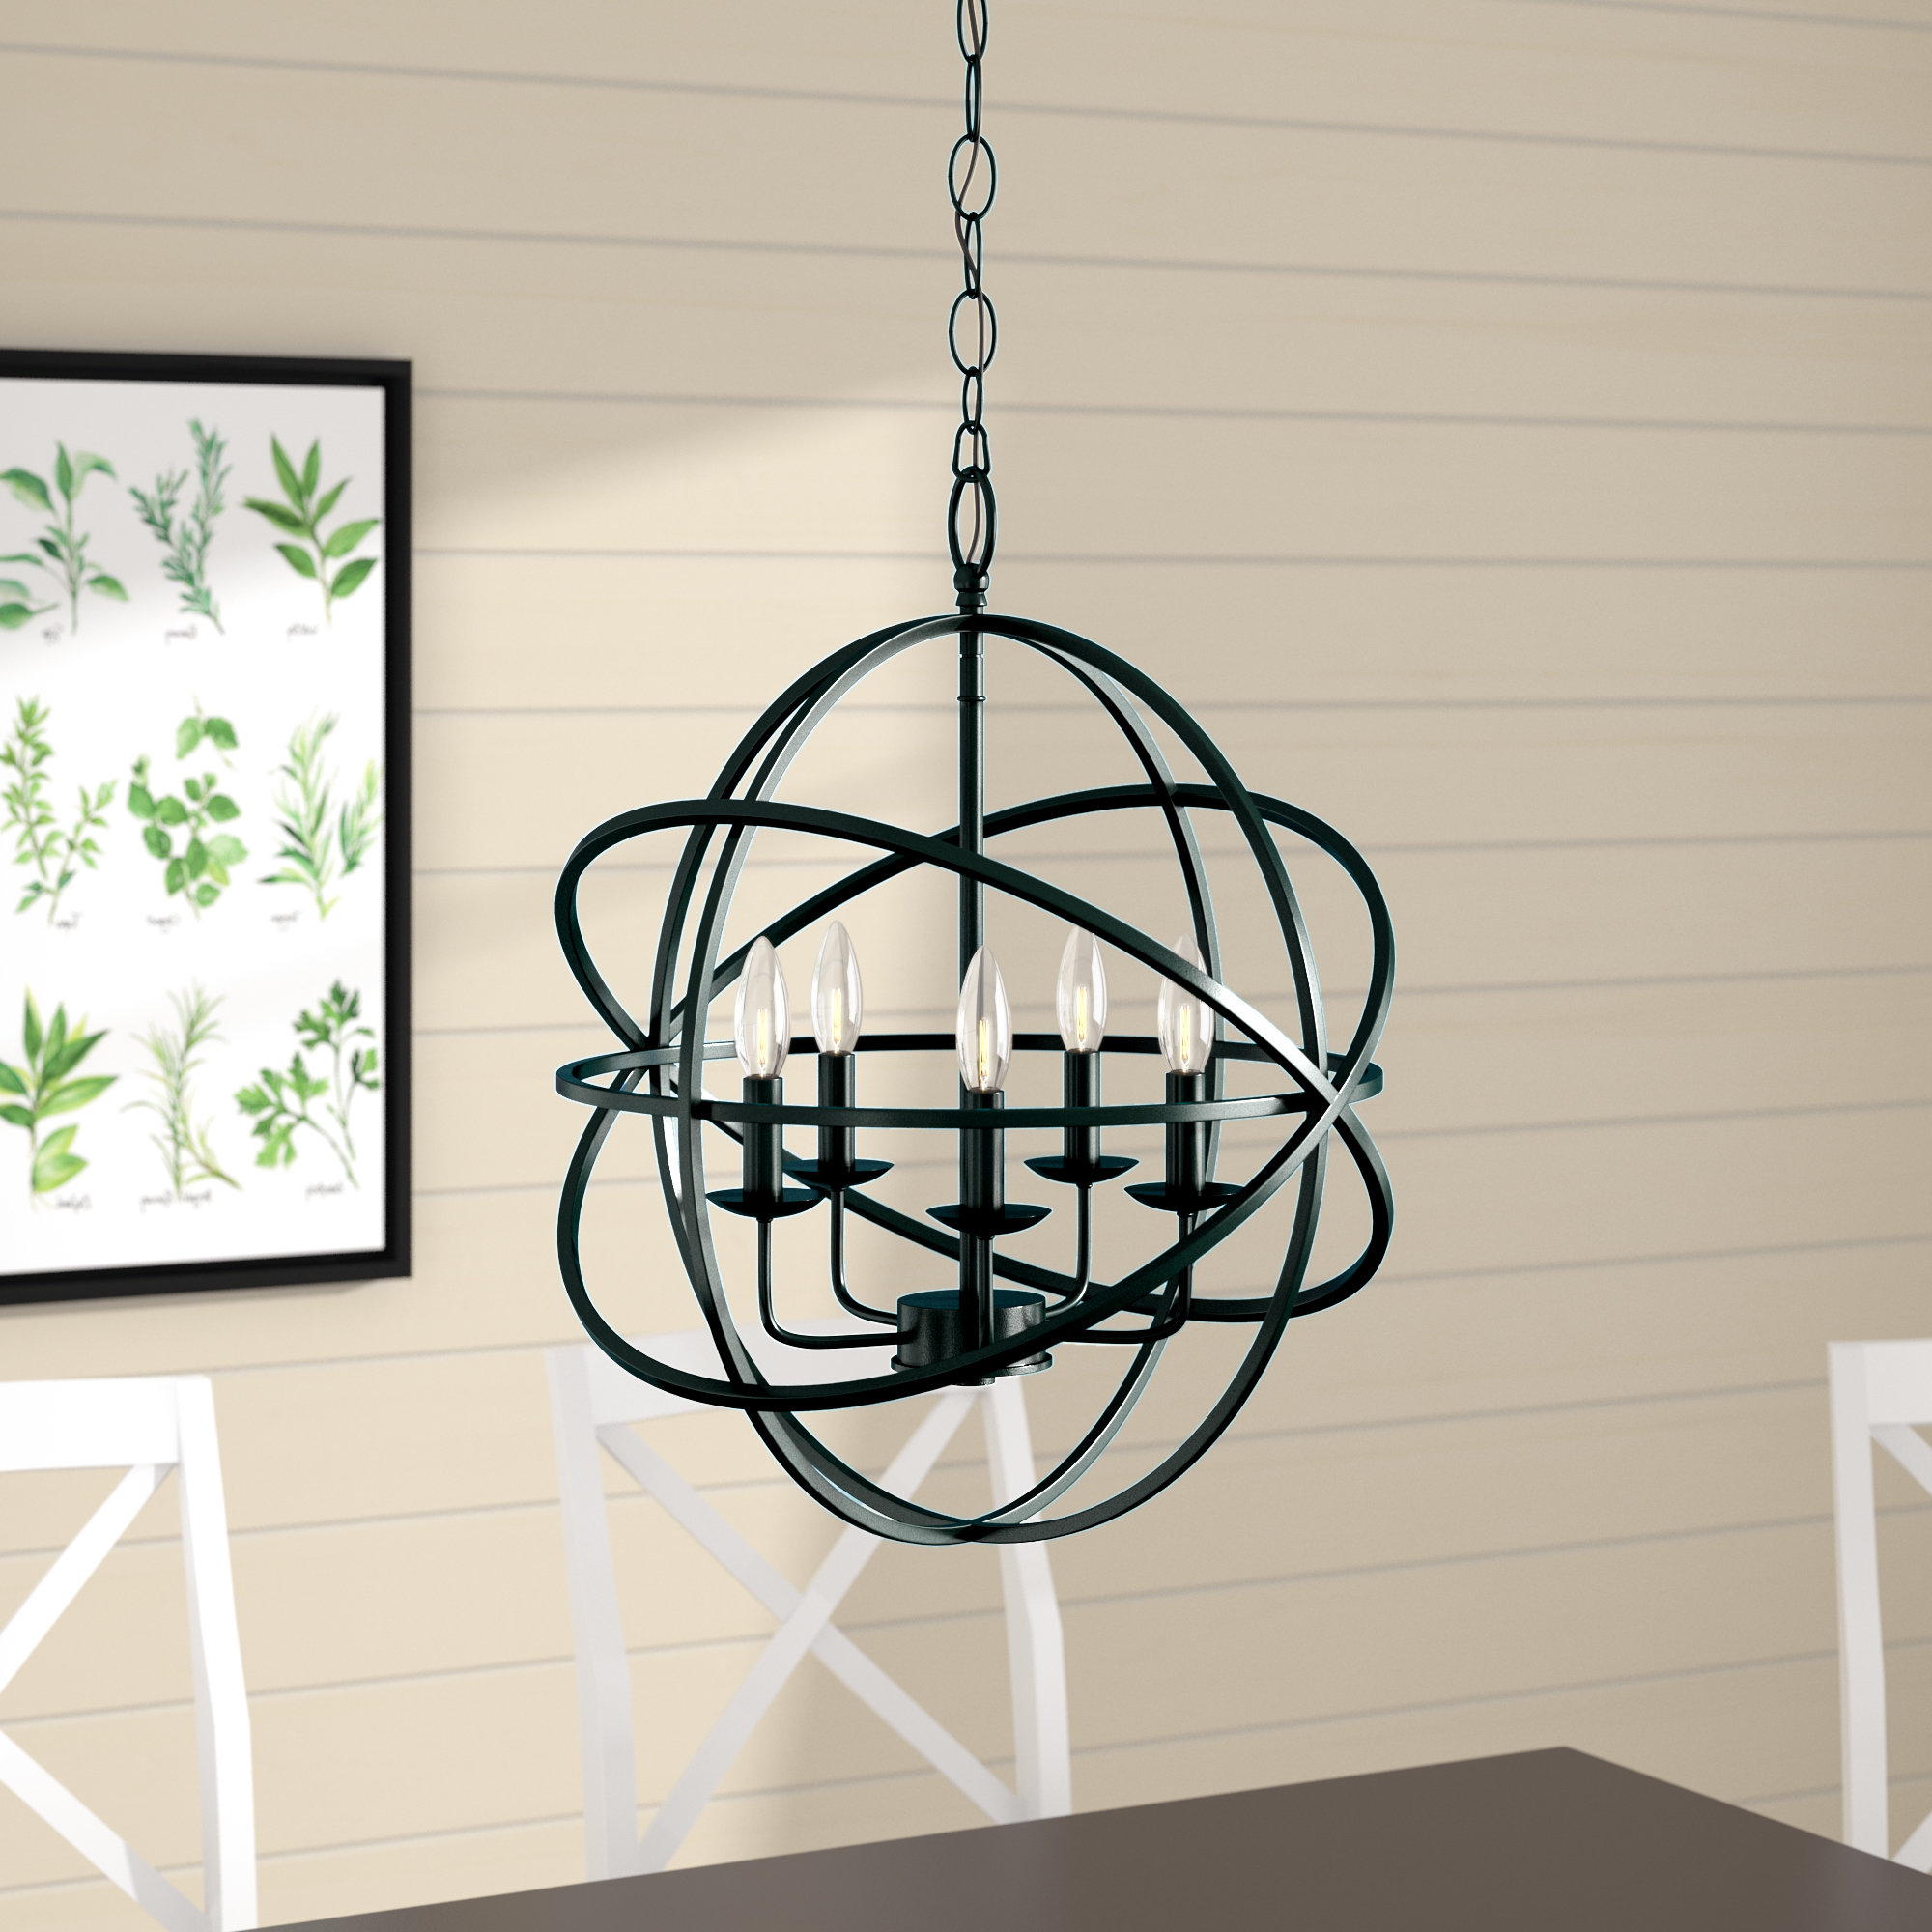 Verlene Foyer 5 Light Globe Chandeliers Regarding Popular Hankinson 5 Light Globe Chandelier (Gallery 4 of 25)